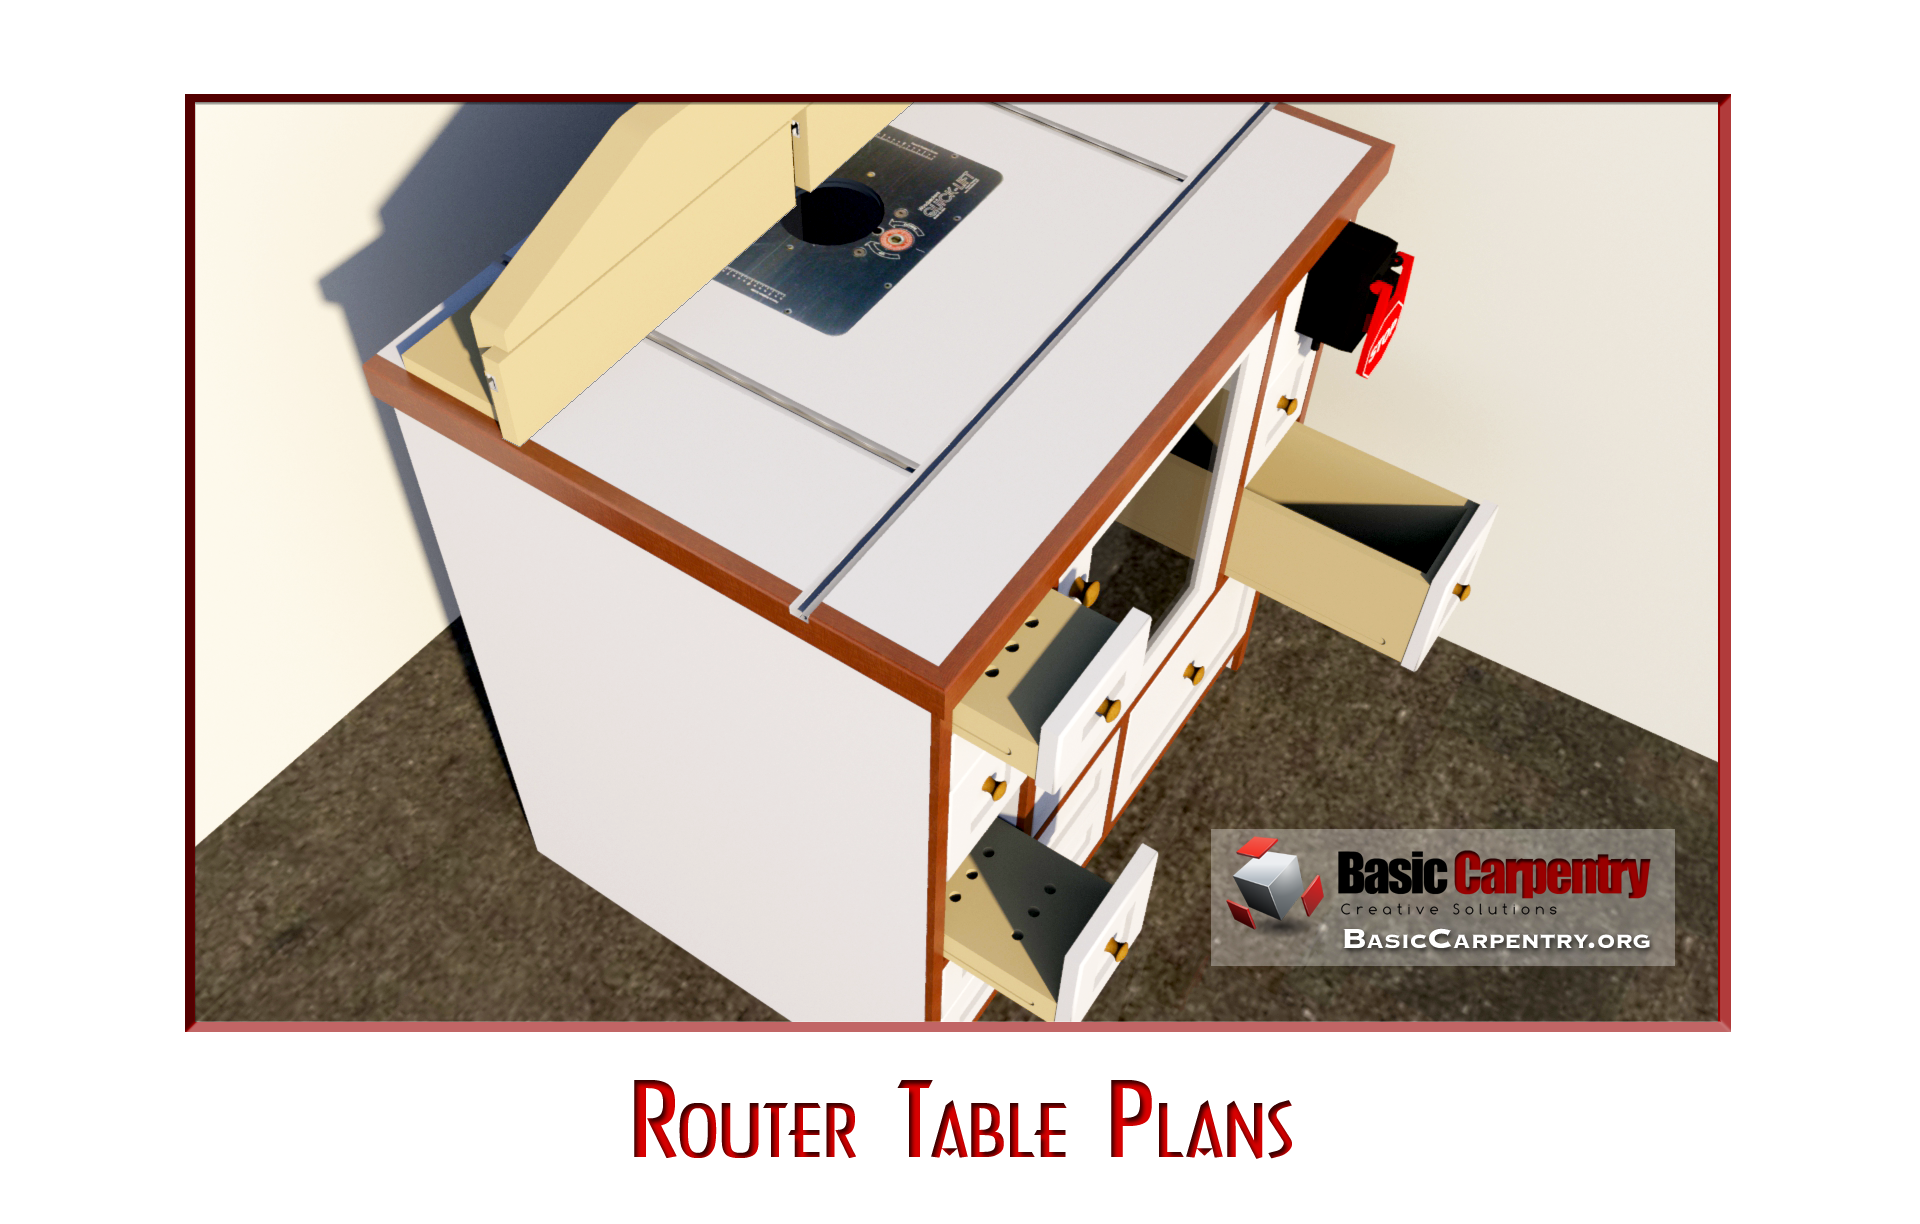 Download my router table plans for free my drawings include download my router table plans for free my drawings include tandom box slides dust keyboard keysfo Image collections